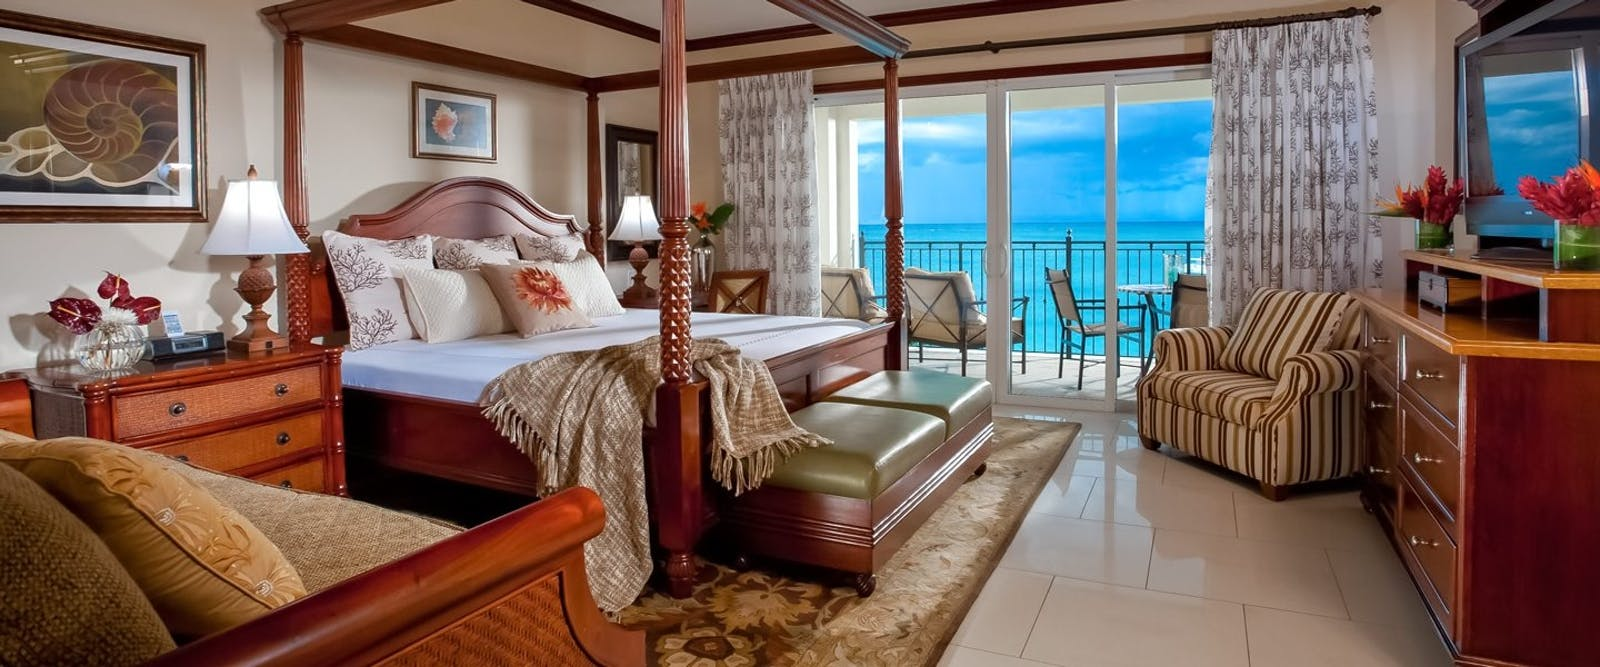 Italian Beachfront Two Bedroom Suite at Beaches Turks & Caicos Resort Villages & Spa